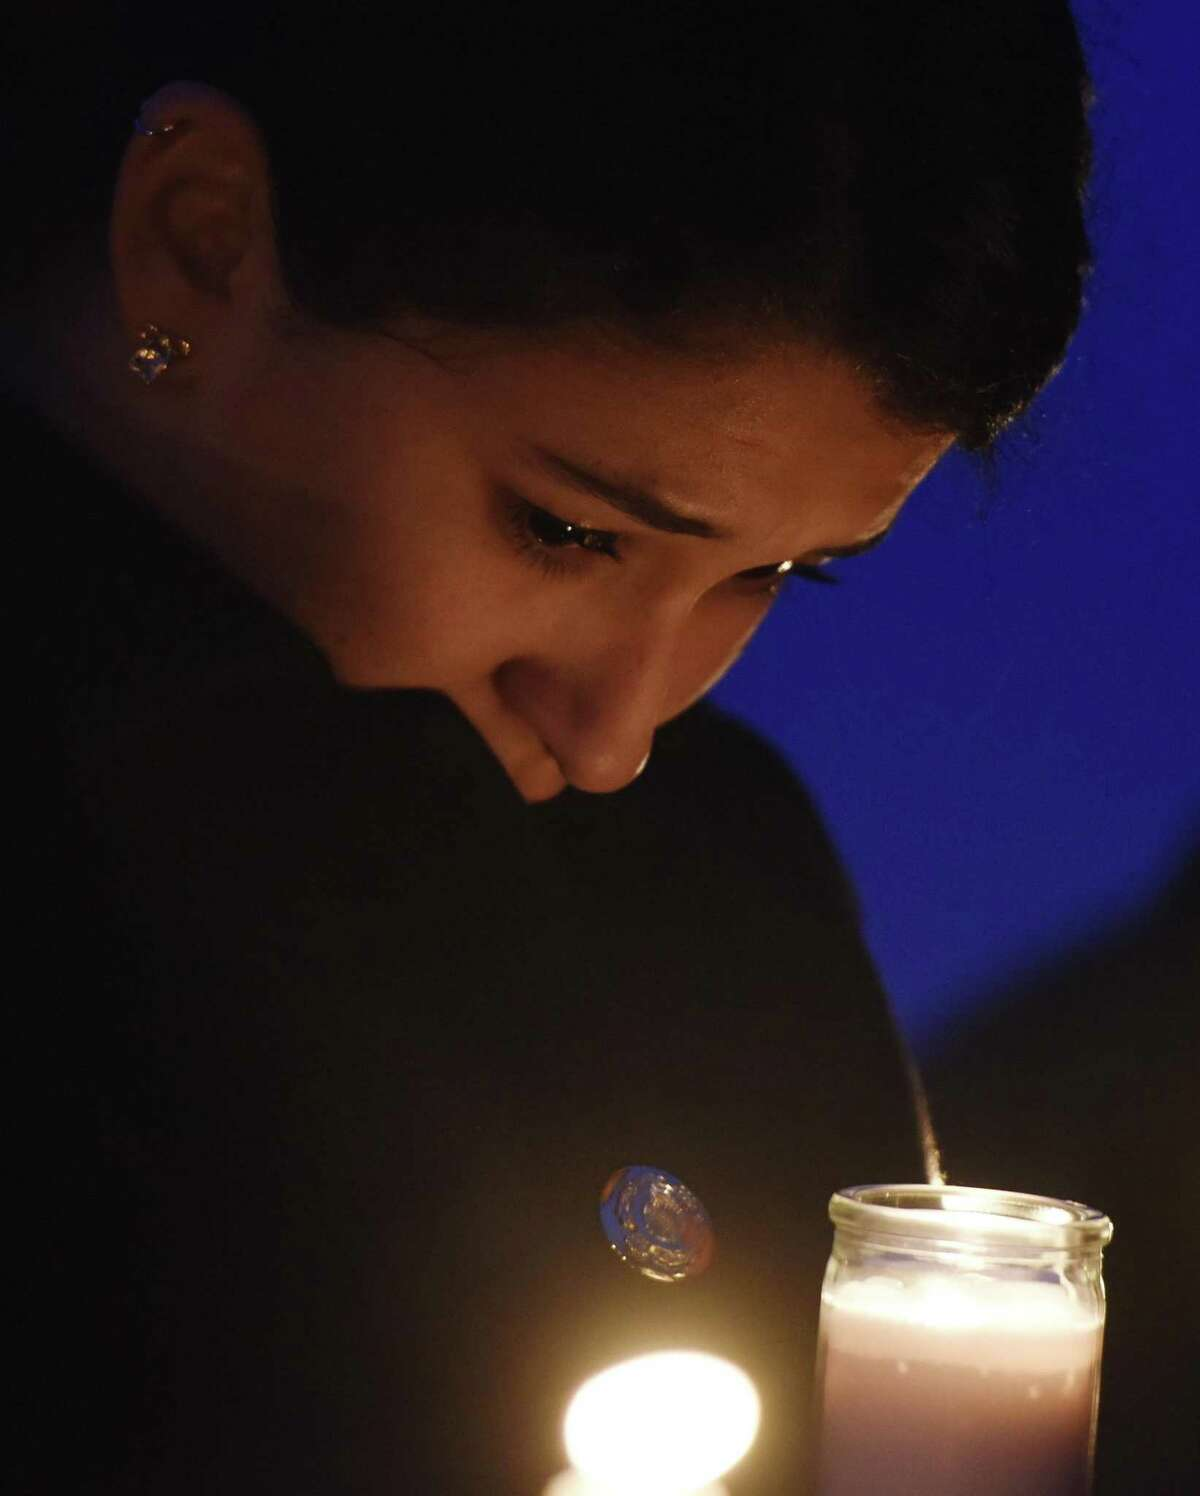 Friends and family grieve for homicide victim Valerie Reyes during a candleight vigil in her honor at Glen Island Park in New Rochelle, N.Y. Thursday, Feb. 7, 2019. Reyes, 24, of New Rochelle, N.Y., was found bound inside of a suitcase just off of Glenville Road in a quiet, wooded area of Greenwich, Conn. on Tuesday morning.